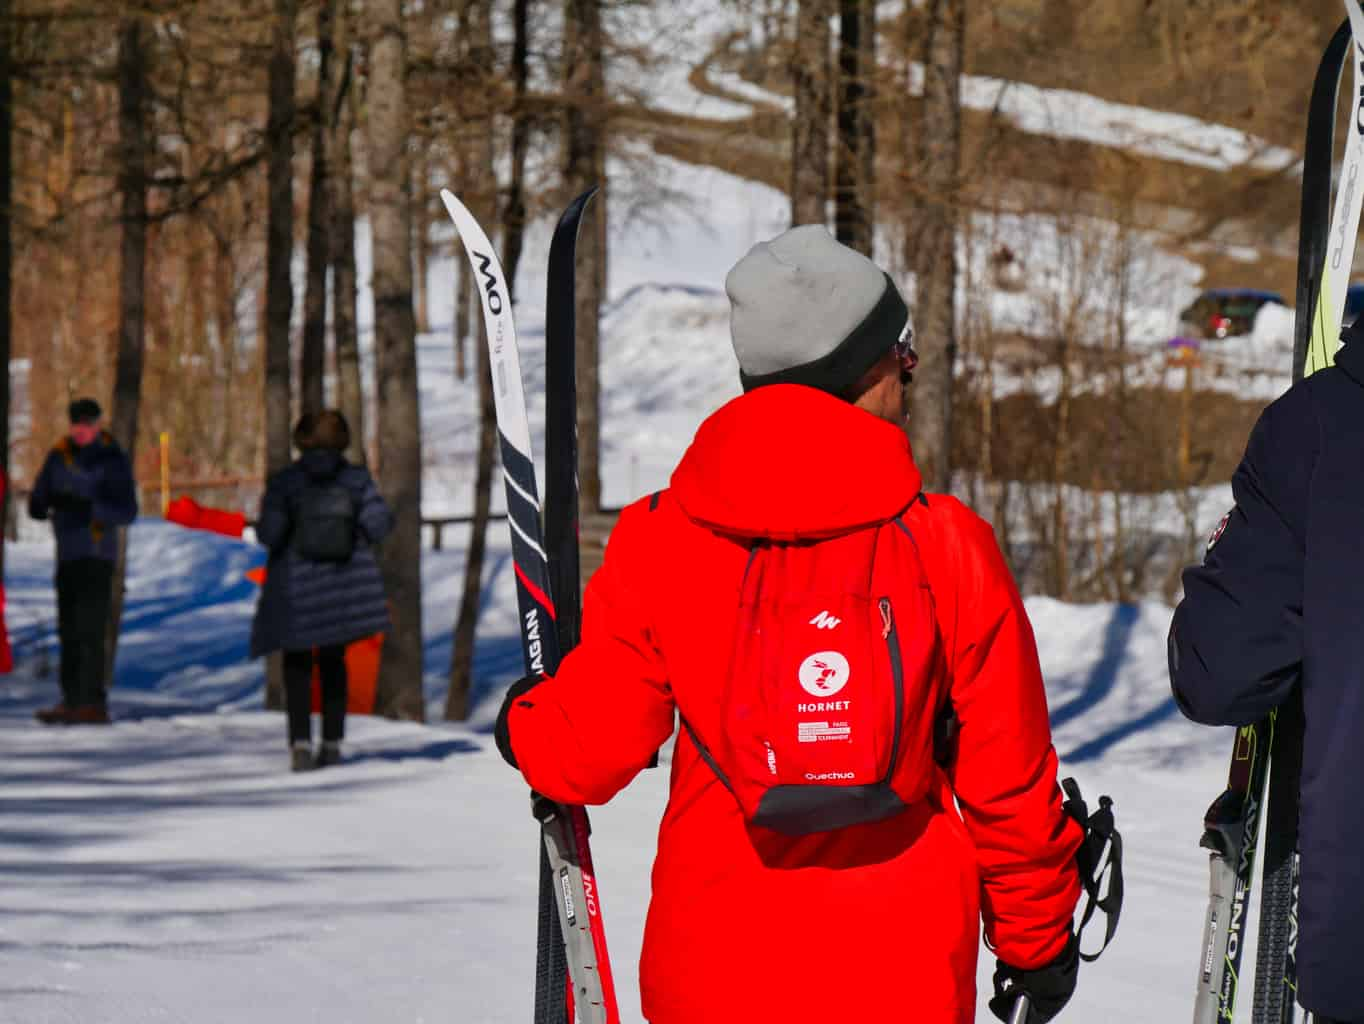 Person carrying Nordic skis in Nordic Ski area in Peisey-Nancroix